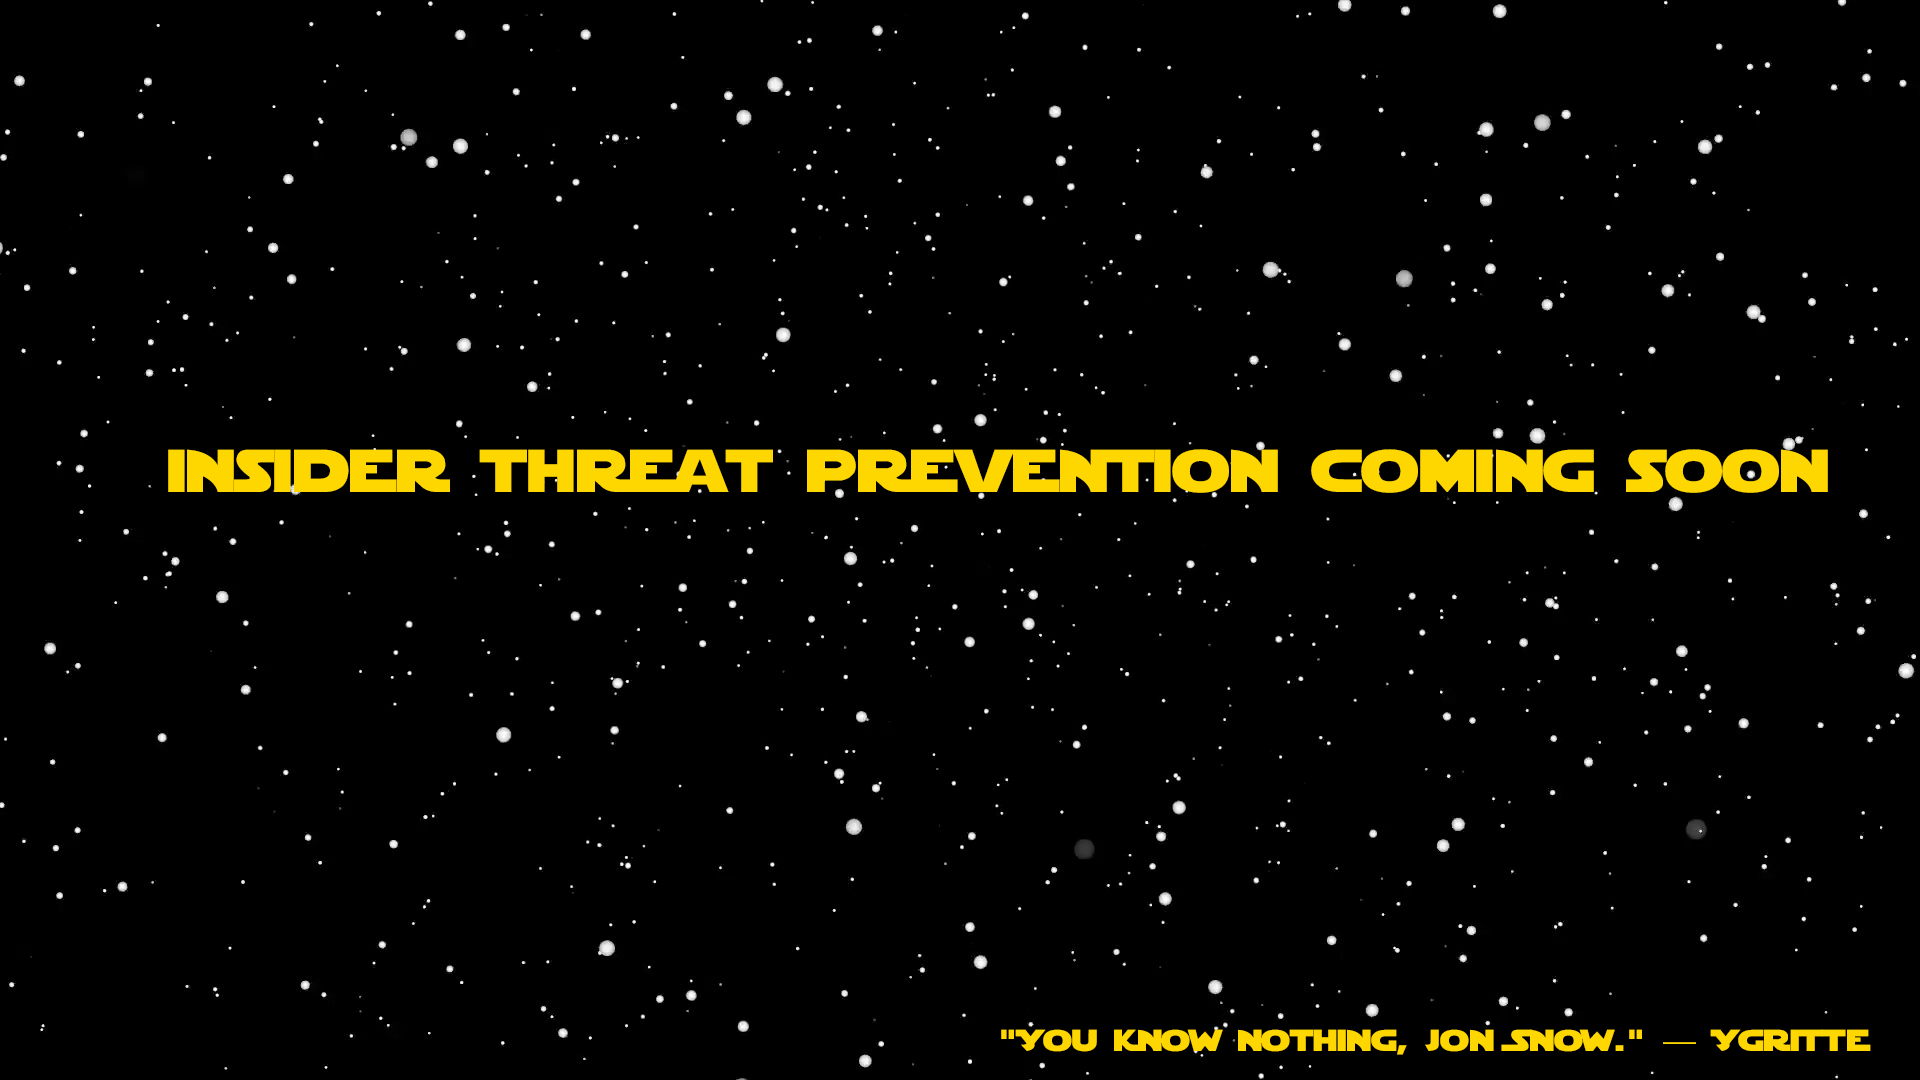 insider_threat_prevention_coming_soon